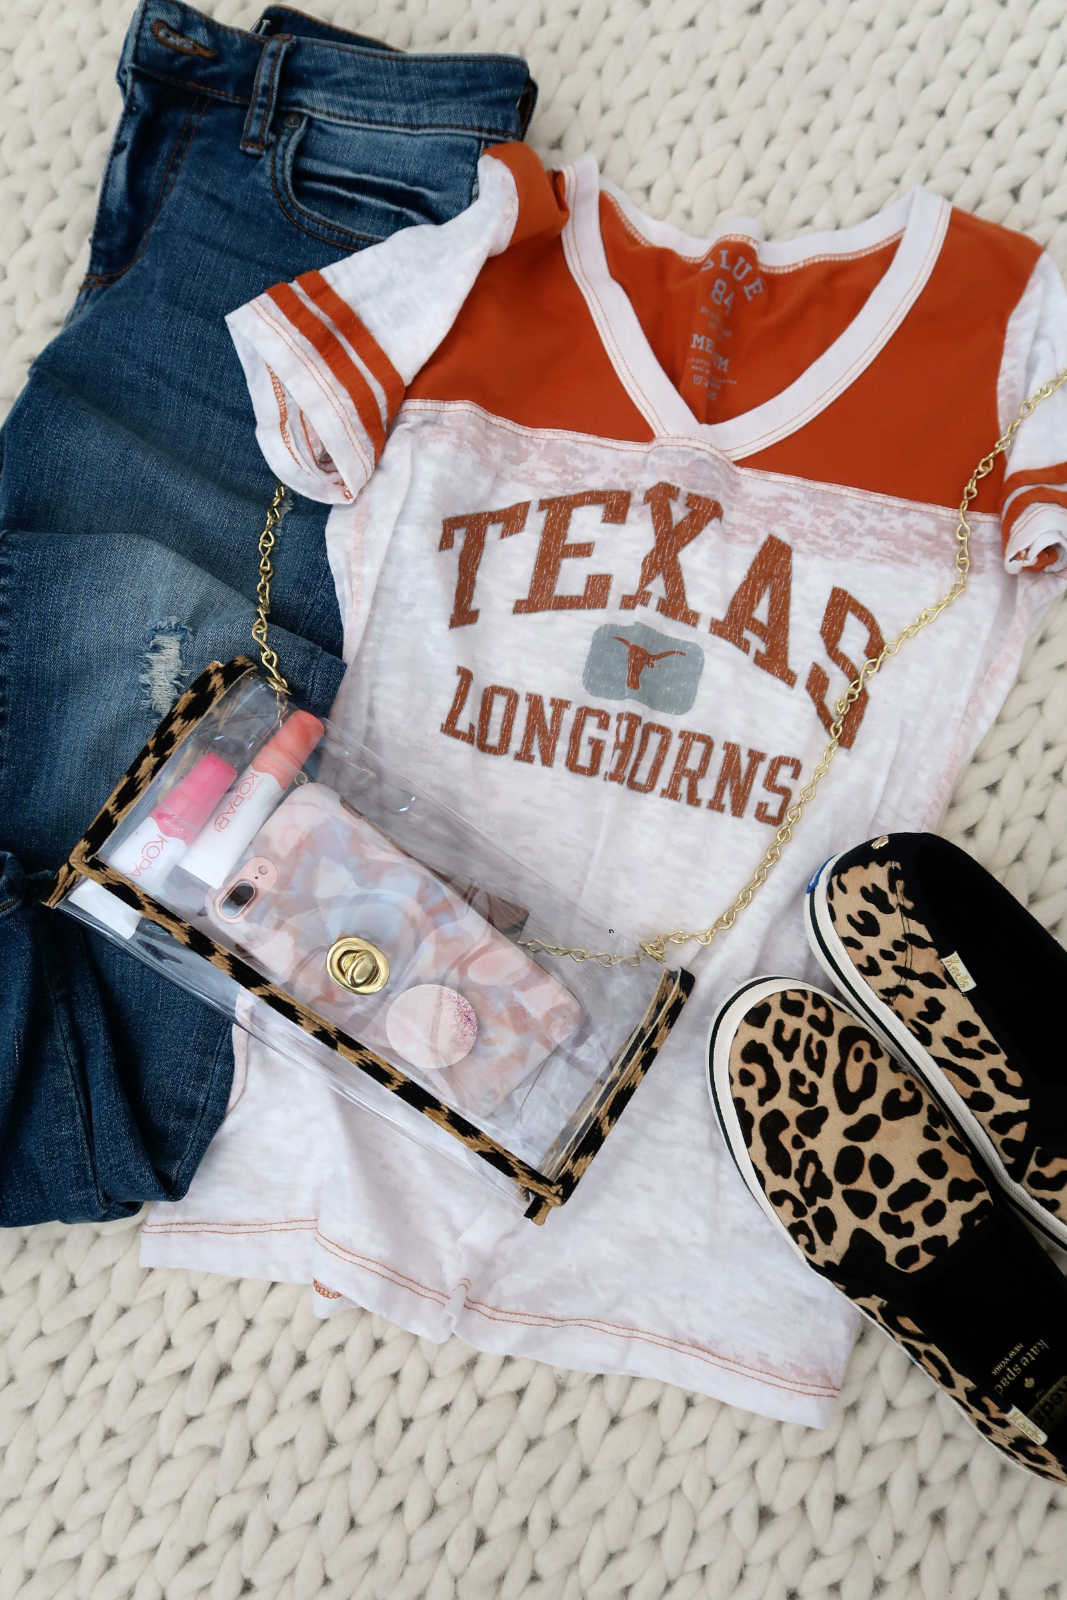 Cute Game Day outfit with stadium approved clear bag